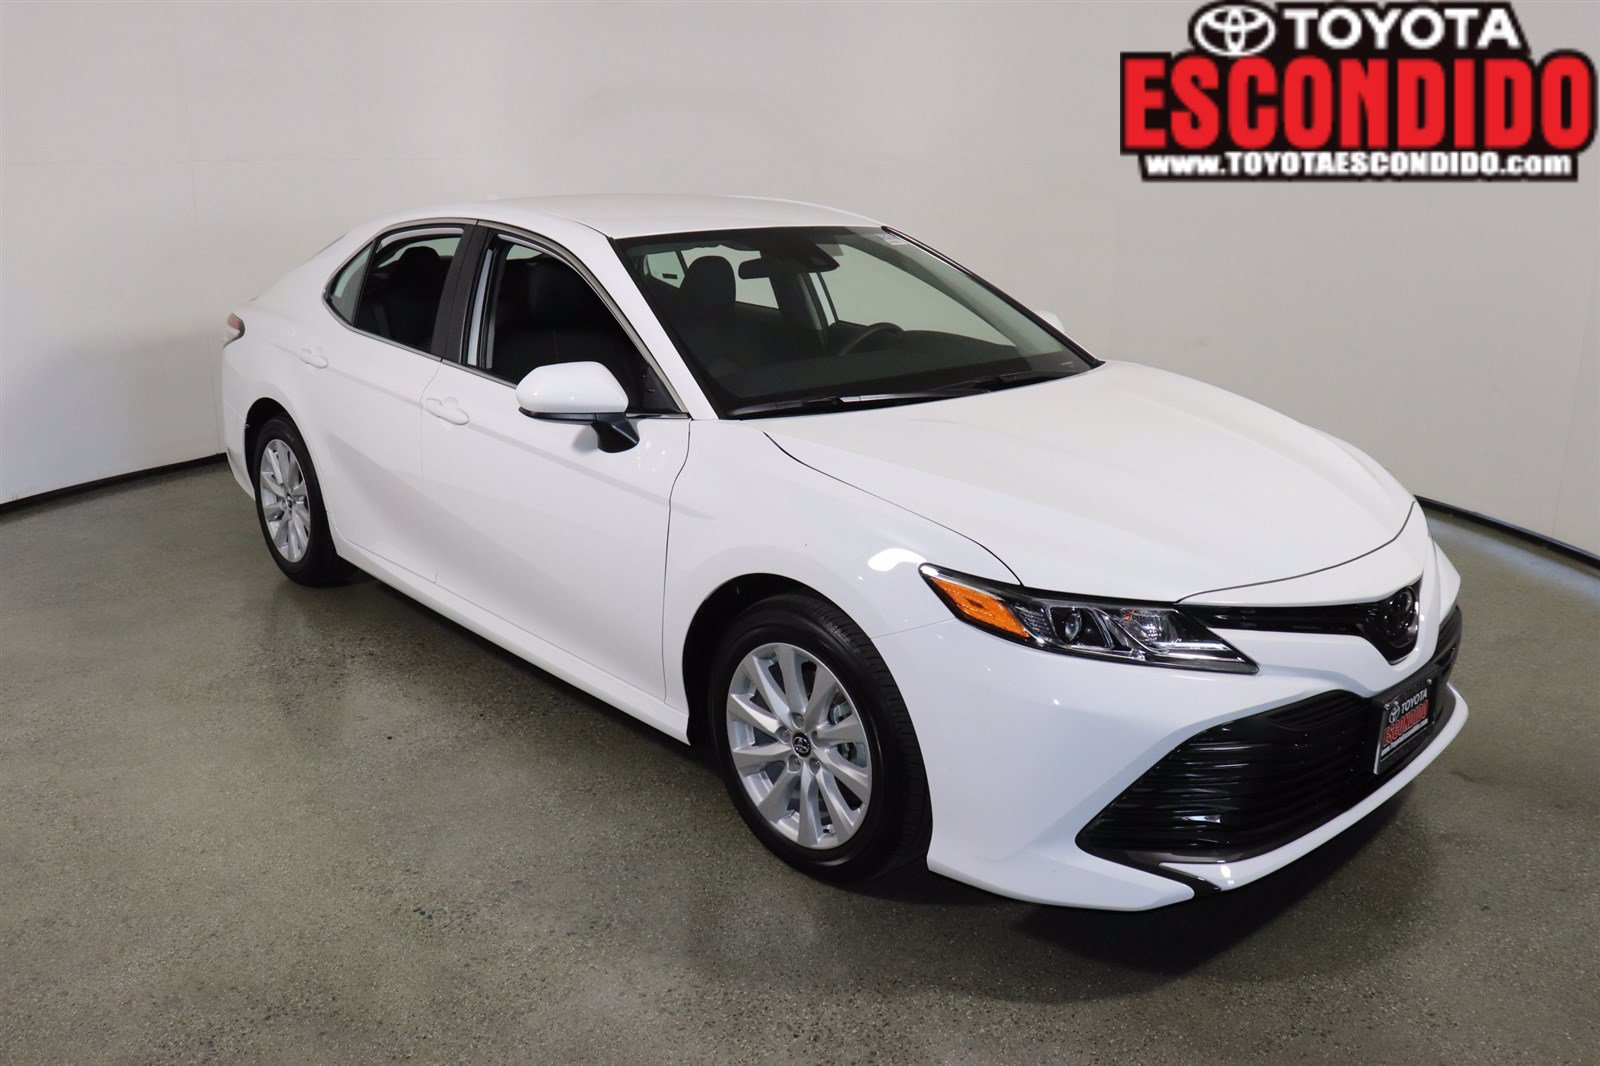 Lease Your New 2020 Toyota Camry LE for $218 /month + tax for 36 mo